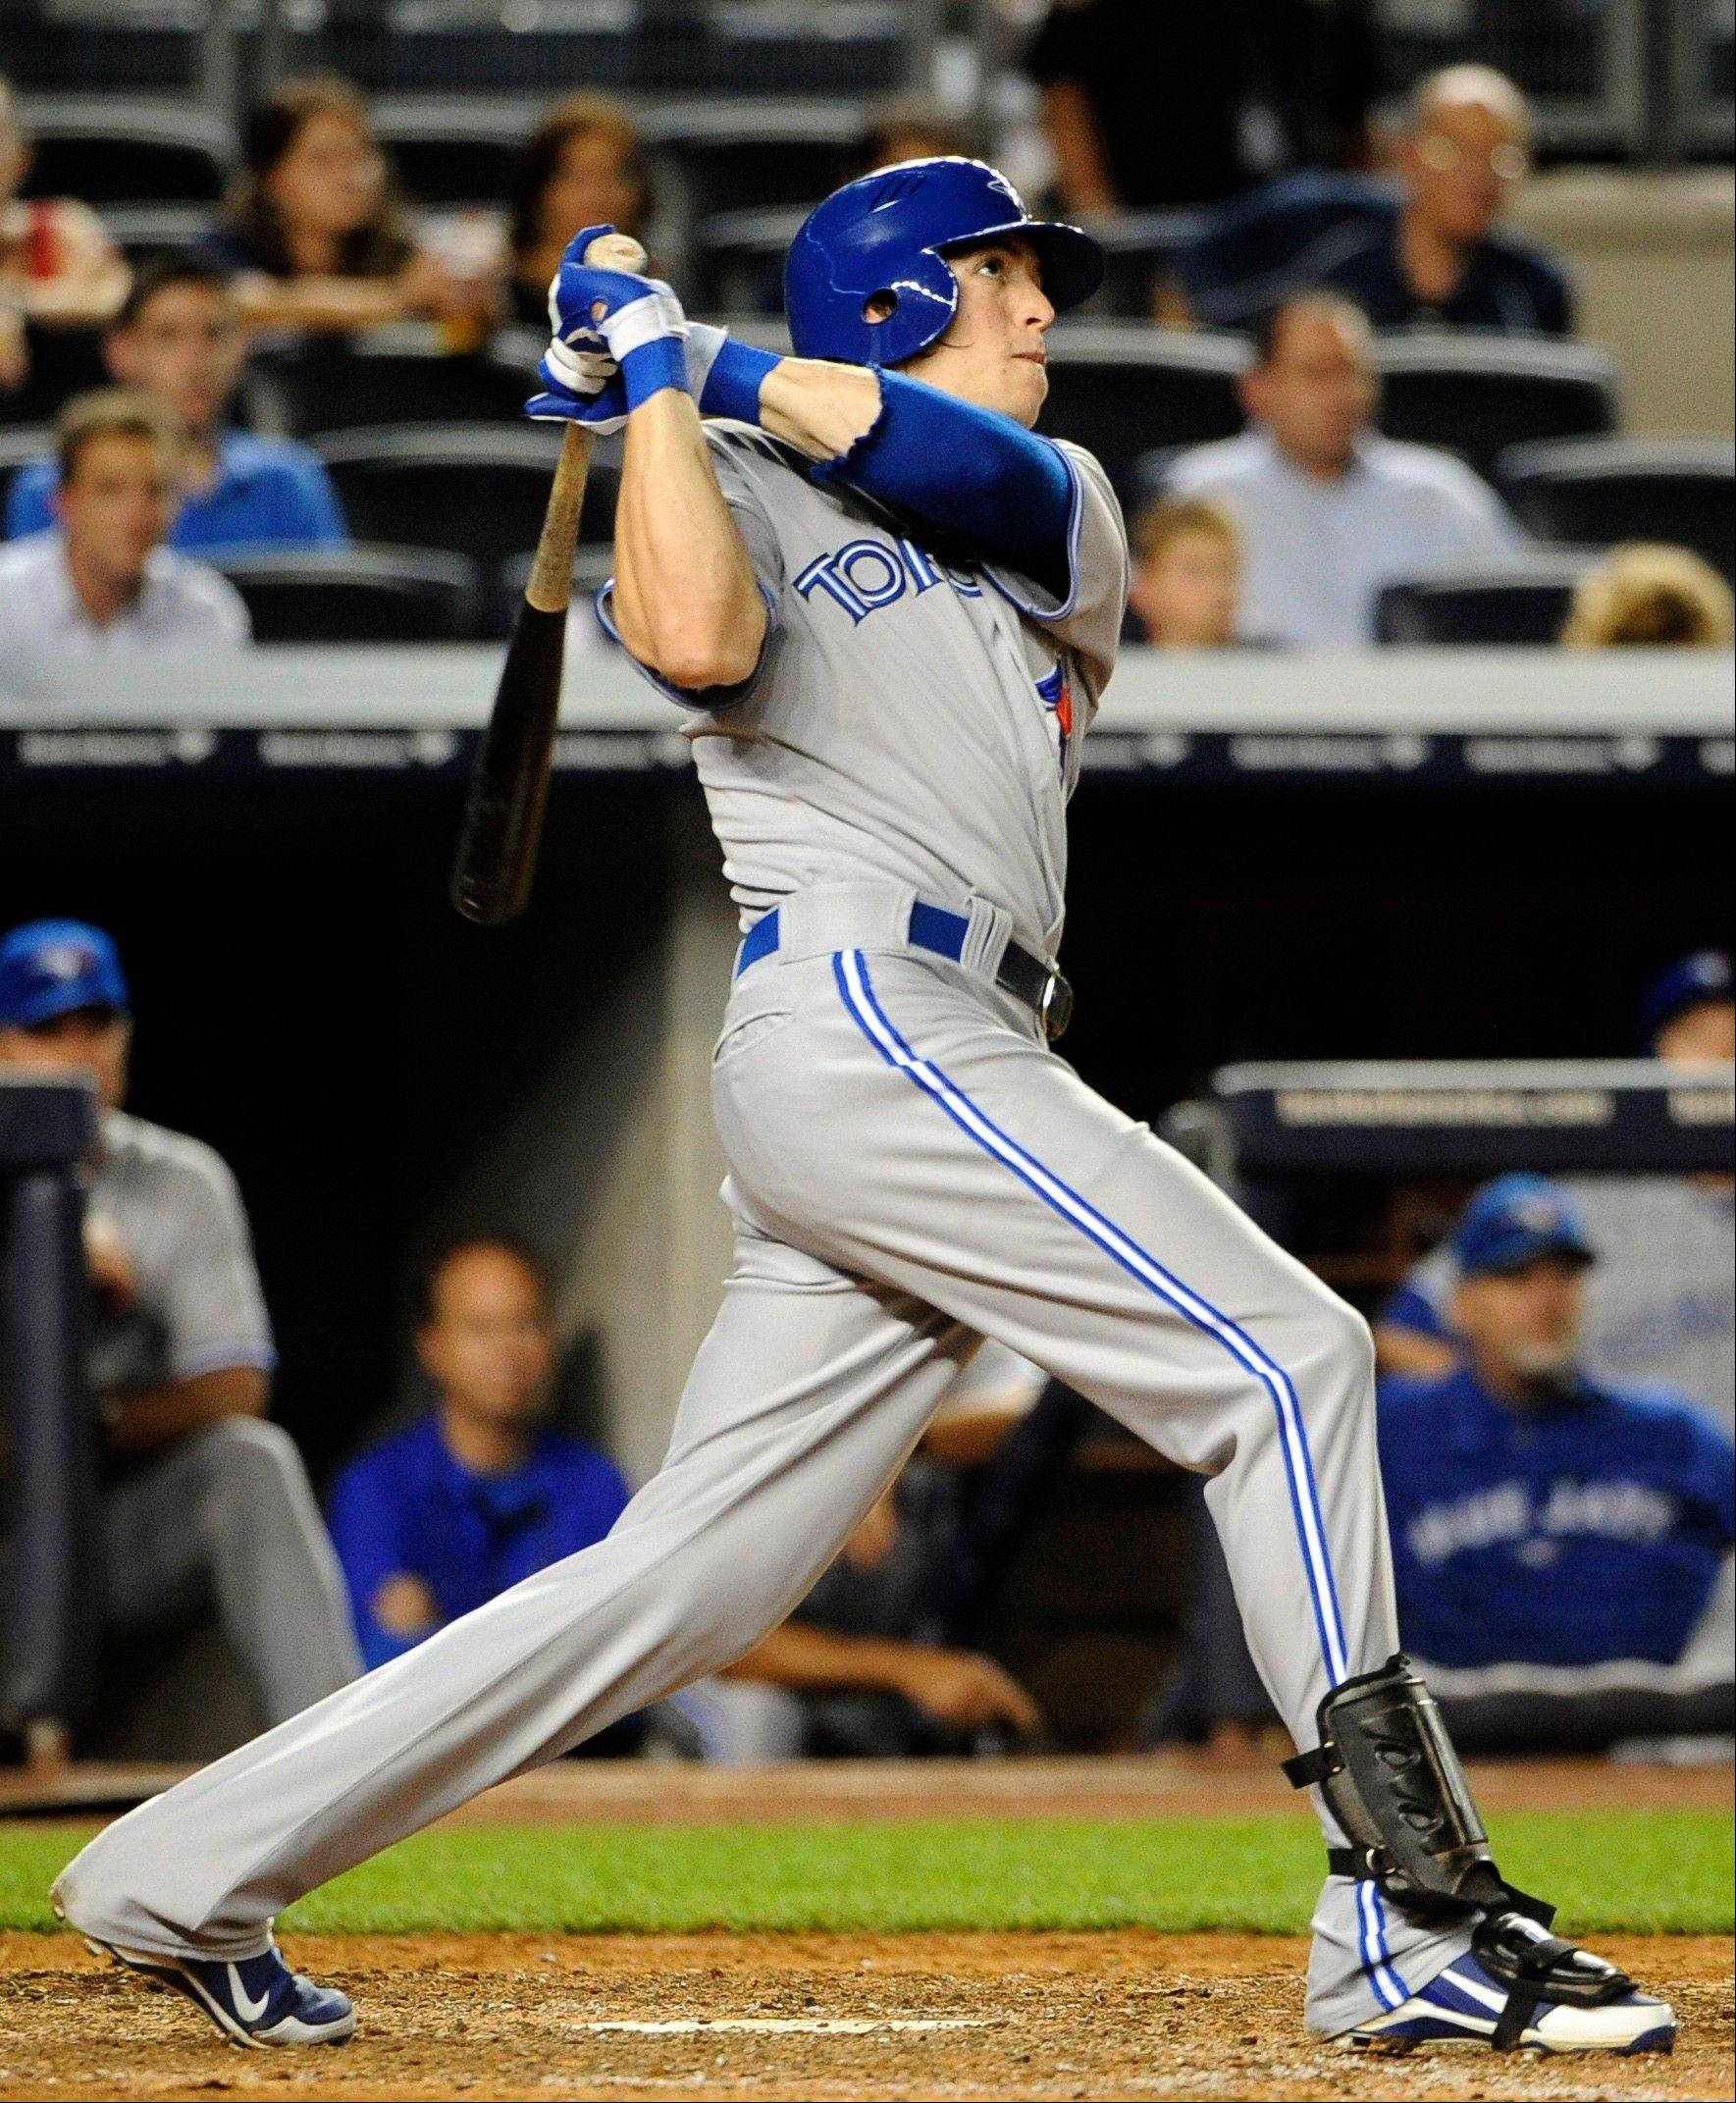 The Blue Jays� Colby Rasmus hits a three-run home run in the ninth inning Monday night in New York.